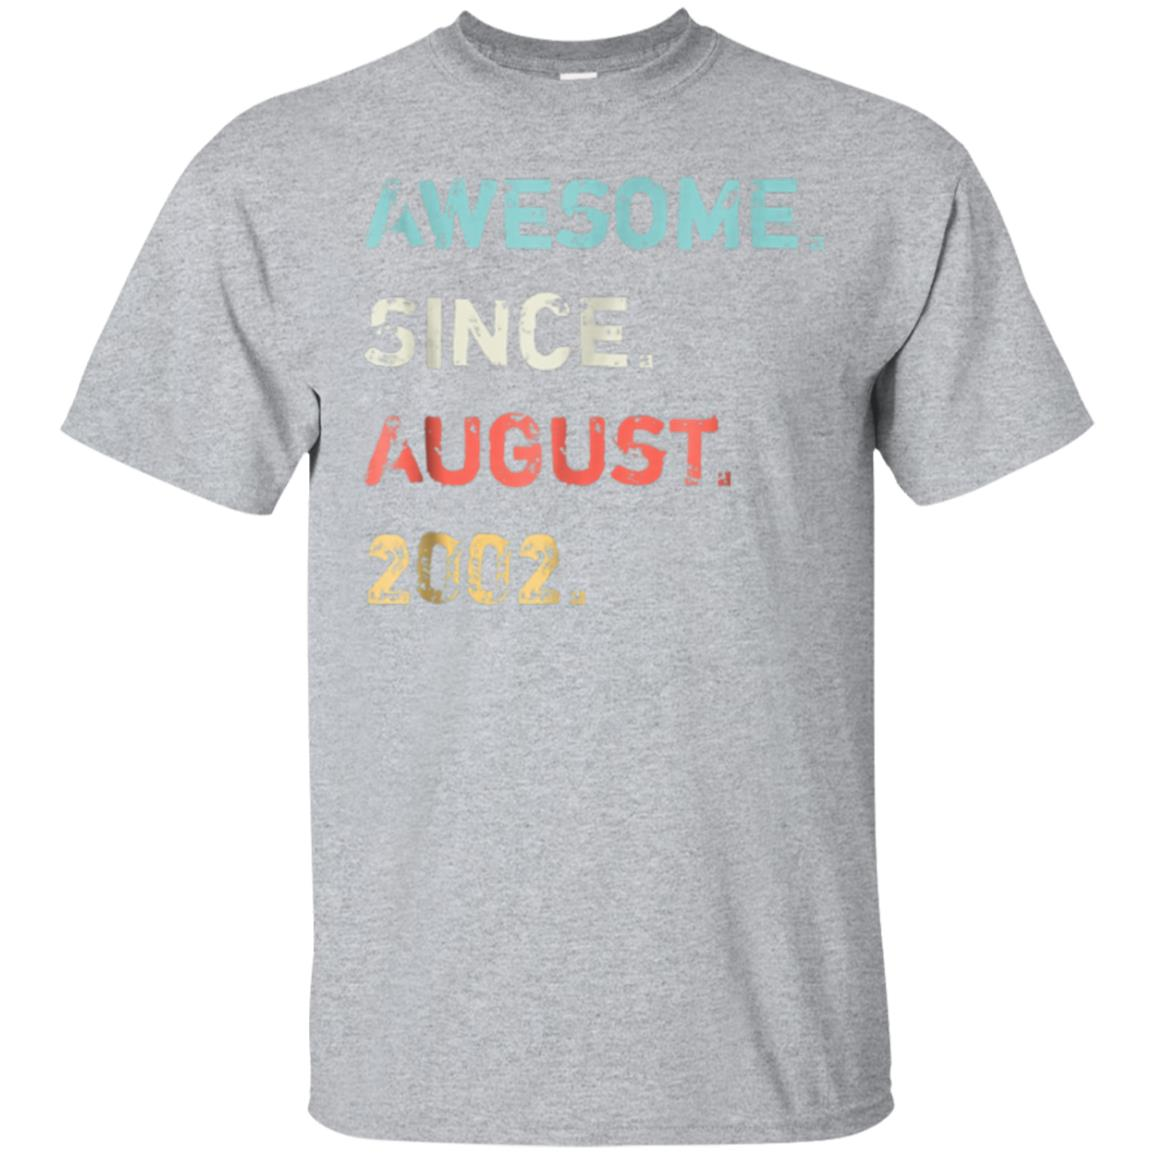 Awesome Since August 2002 16 Years Old Birthday Gift Shirt 99promocode